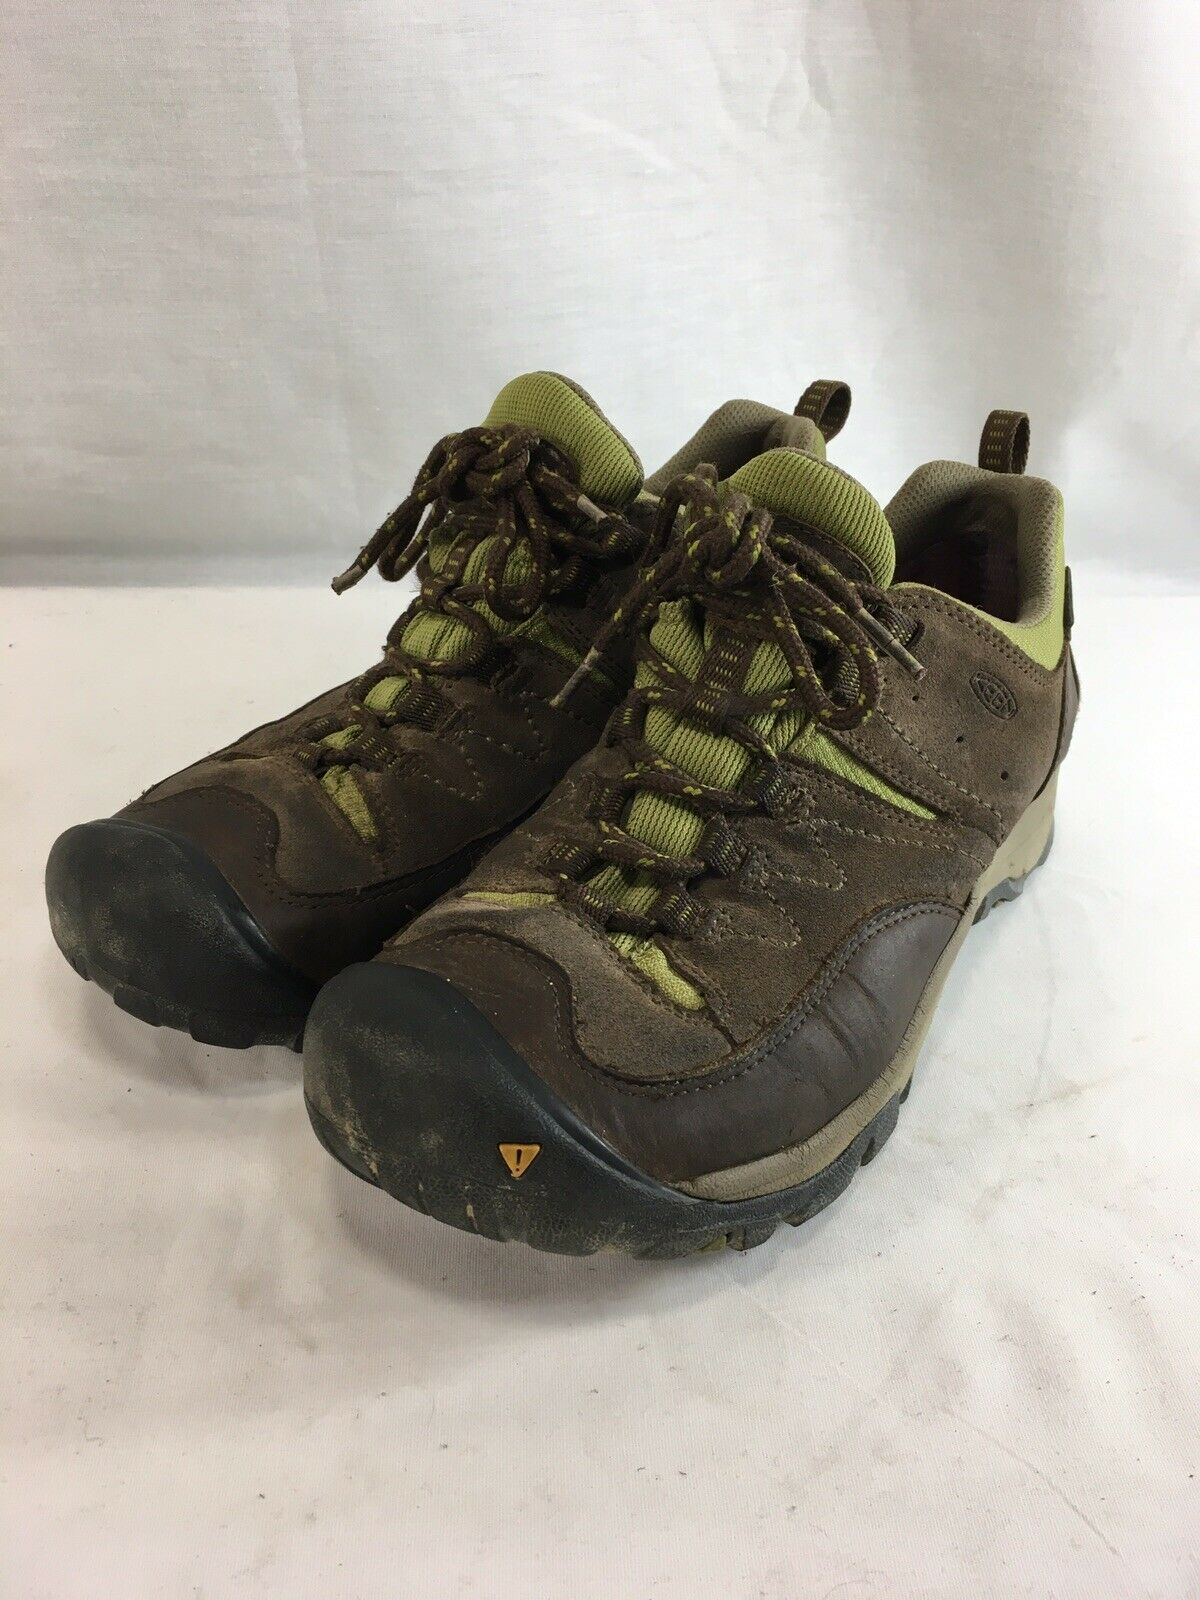 Keen  Hiking Boots Trail Sneakers Womens 10 Brown Leather Green Fabric Keen Dry  we offer various famous brand